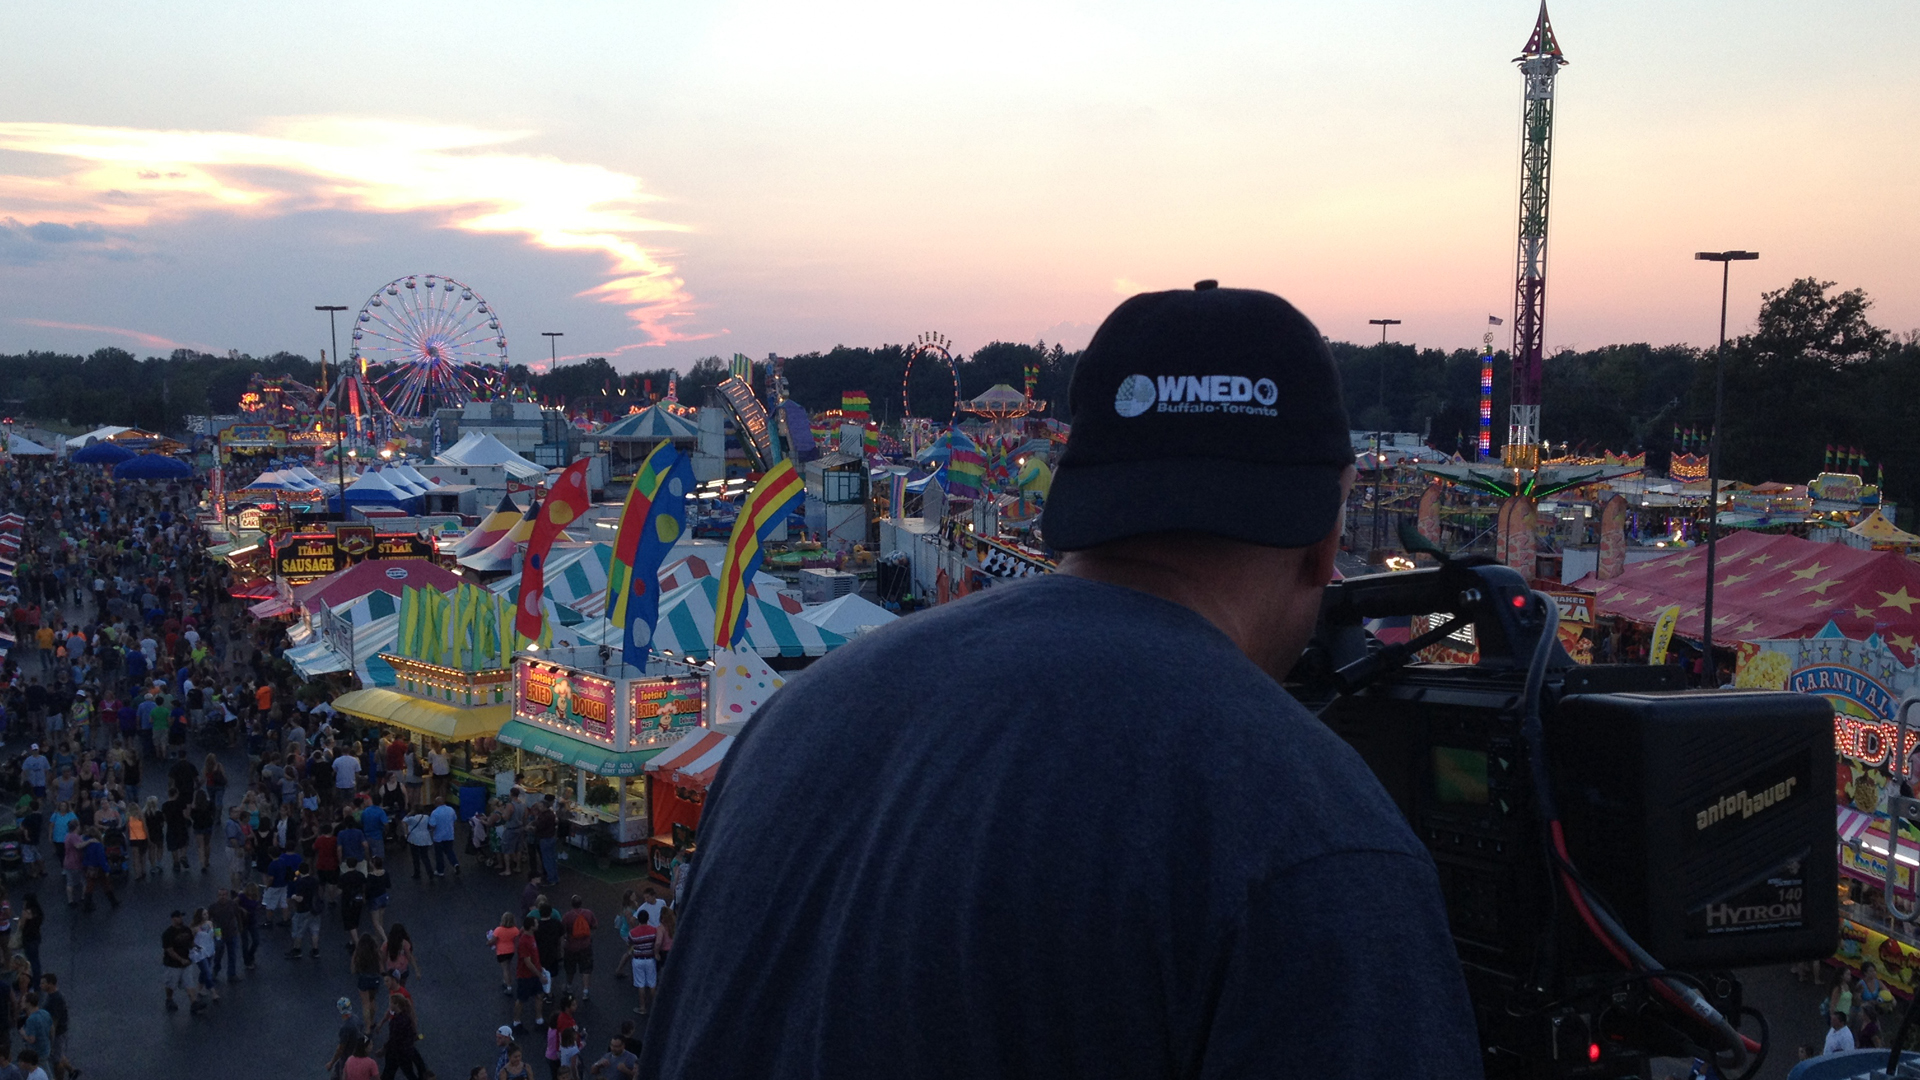 Photographer Jim Zinkowski captures images of the midway at sunset for The Great Erie County Fair